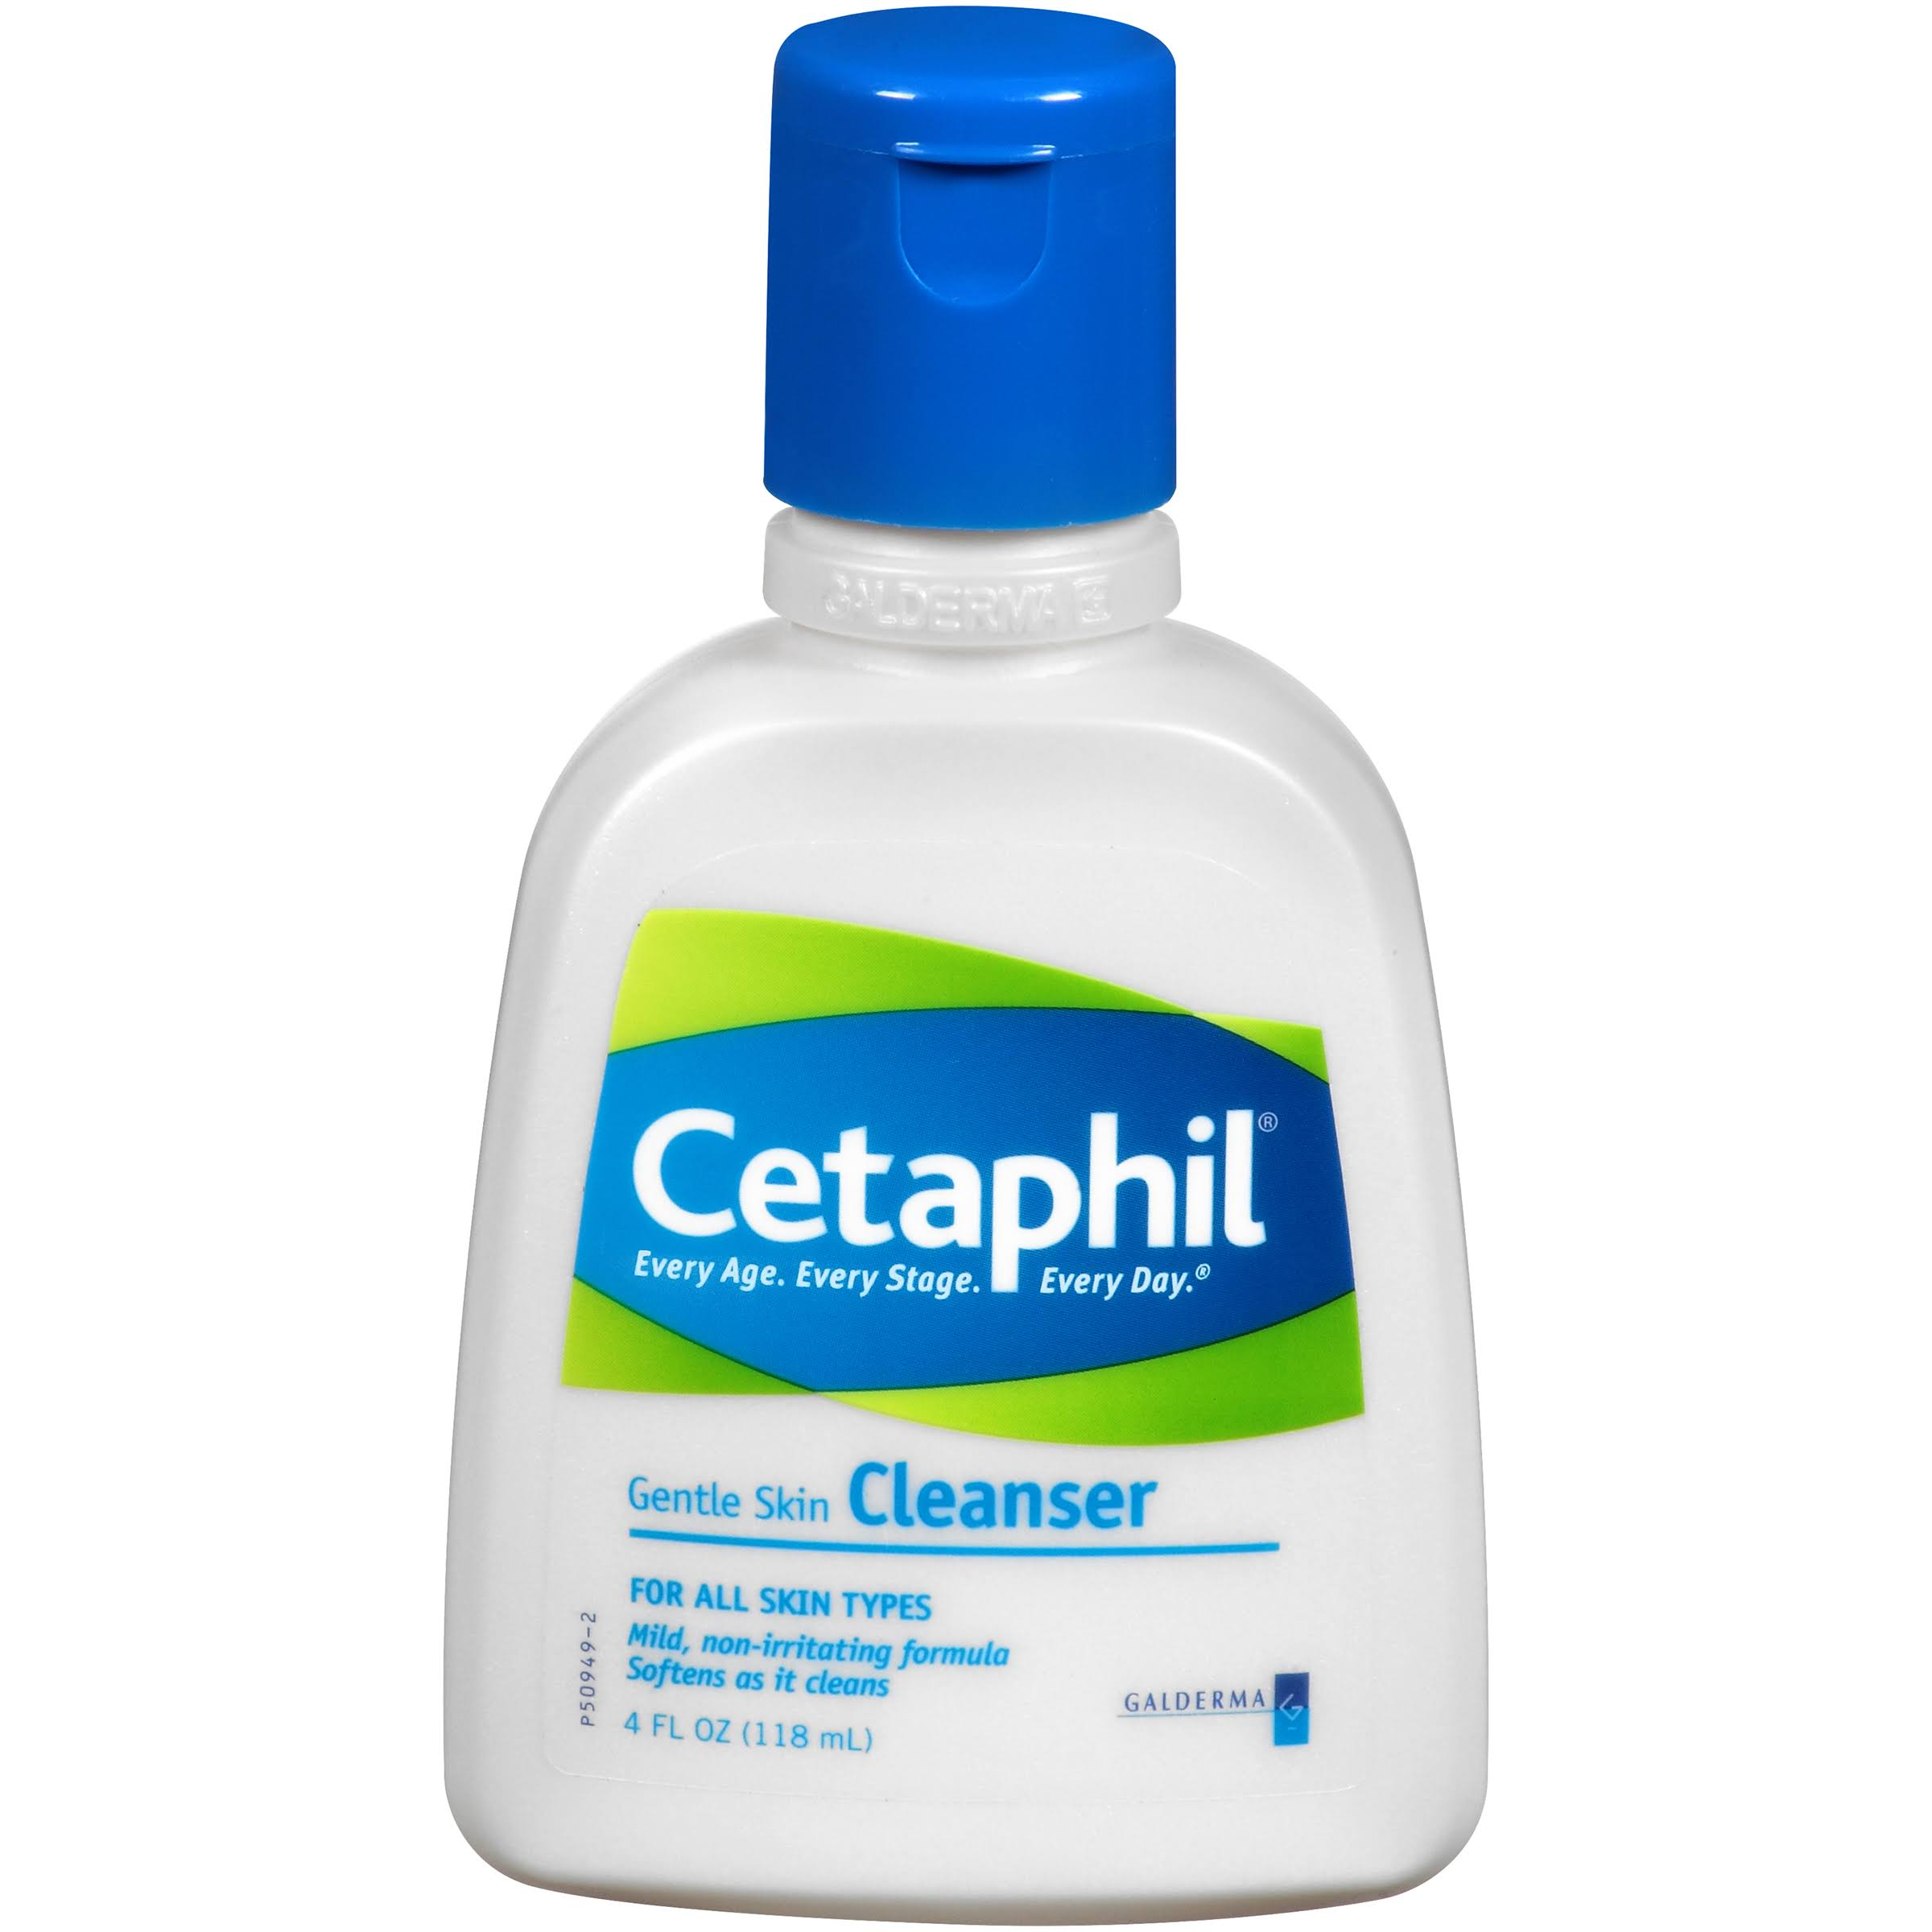 Cetaphil Gentle Skin Cleanser - 118ml